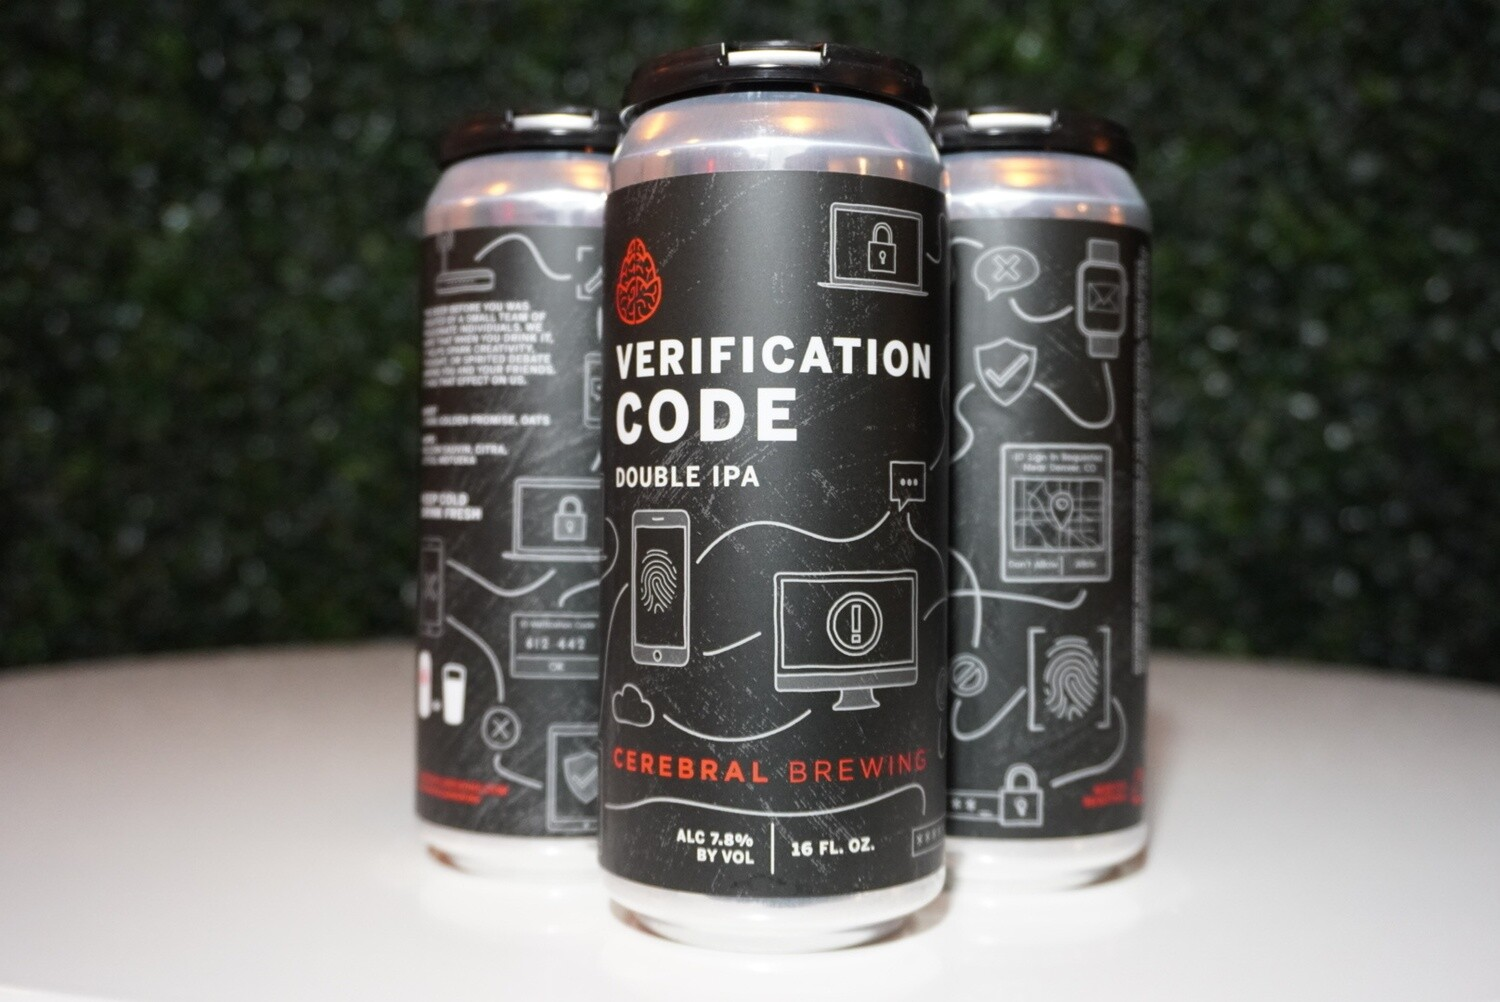 Cerebral - Verification Code - Double IPA - 7.8% ABV - 4 pack